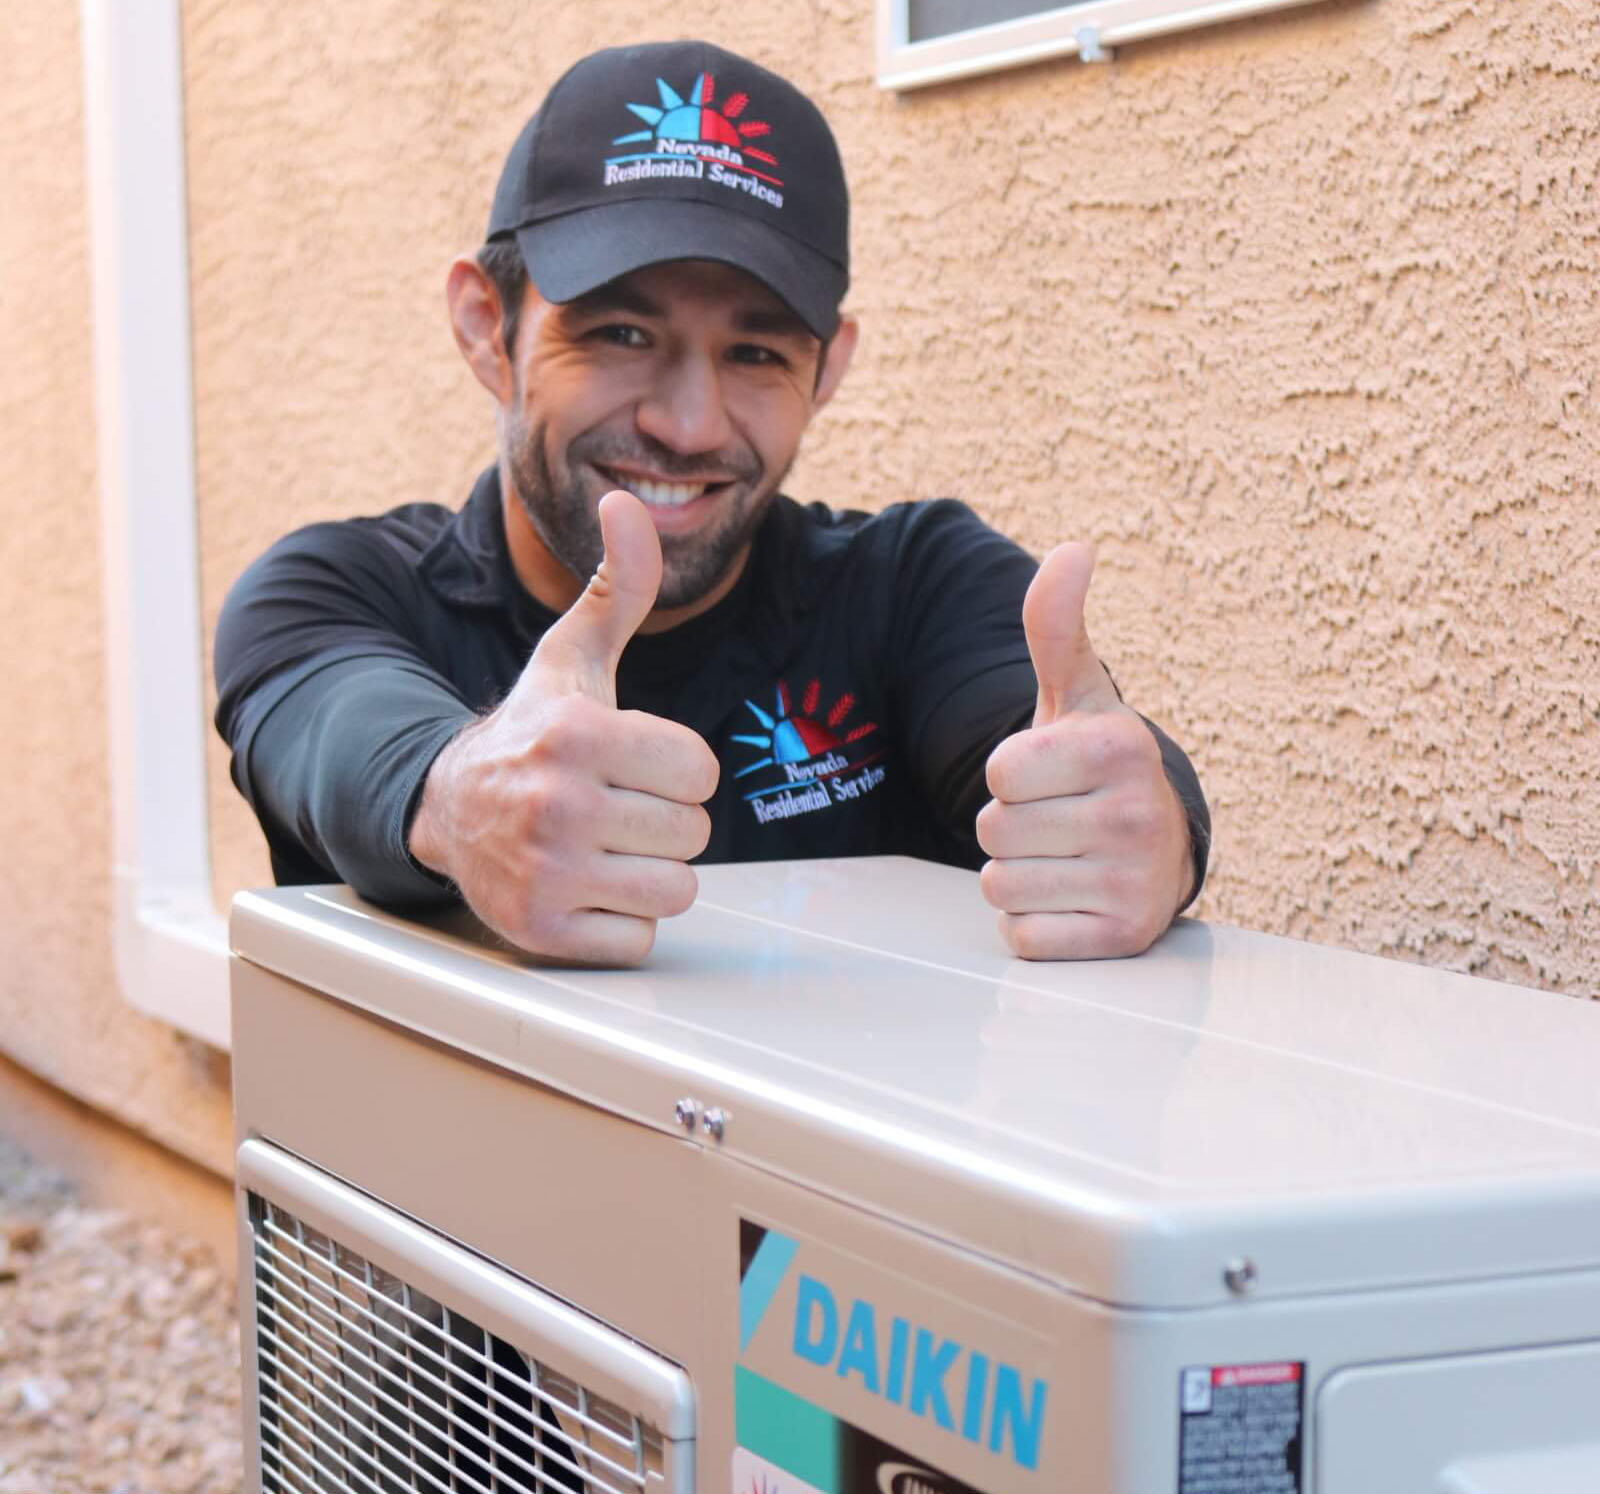 Ductless Mini Split HVAC Systems - Nevada Residential Services